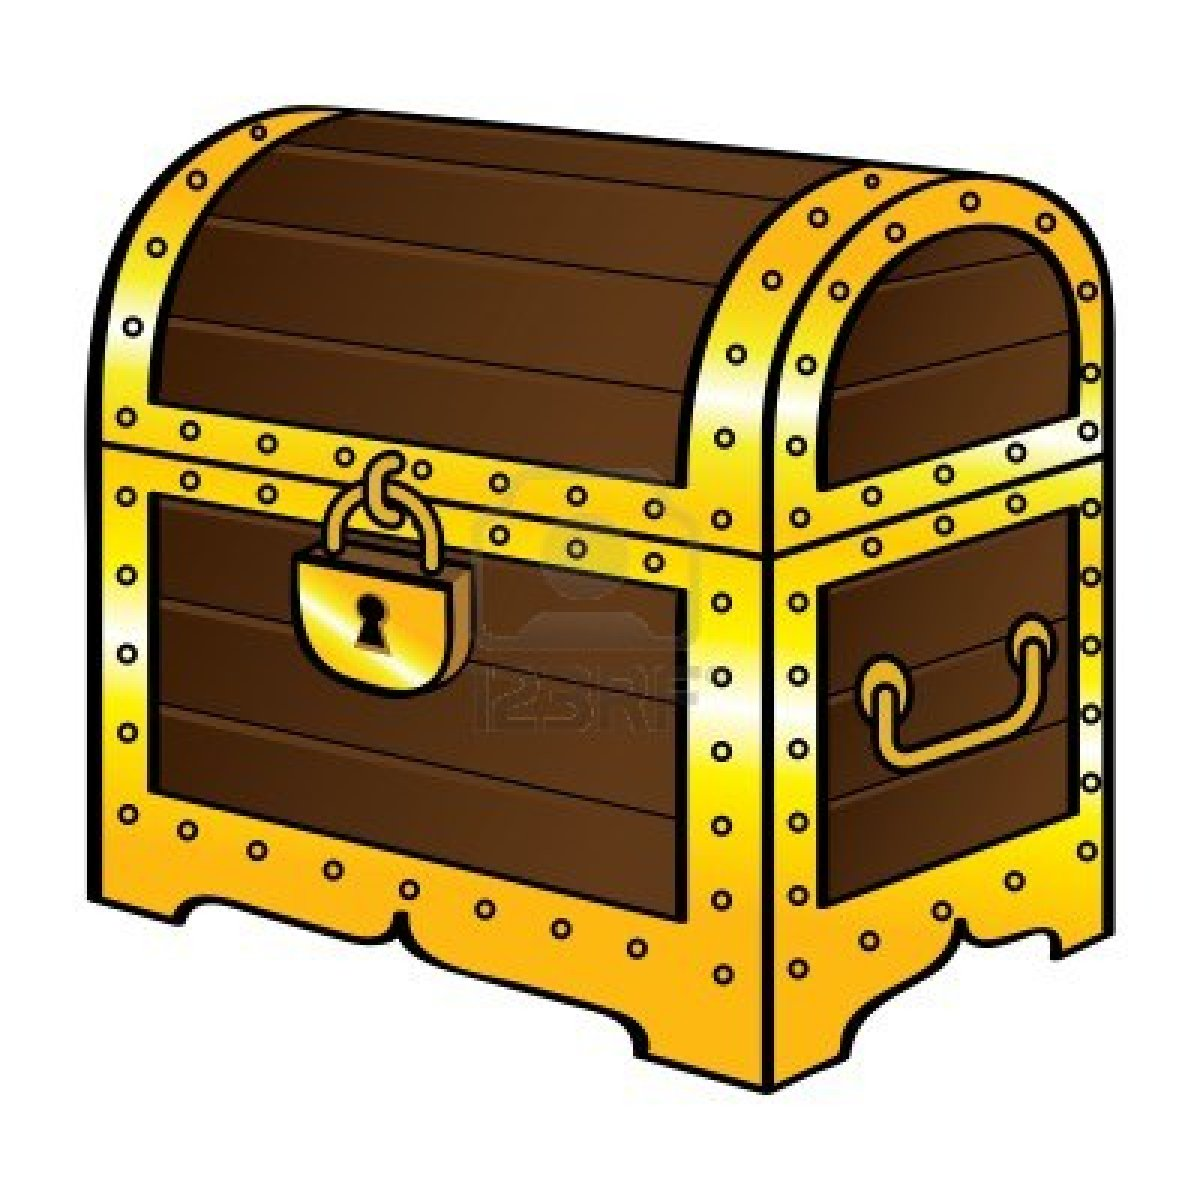 Picture Treasure Chest - Cliparts.co